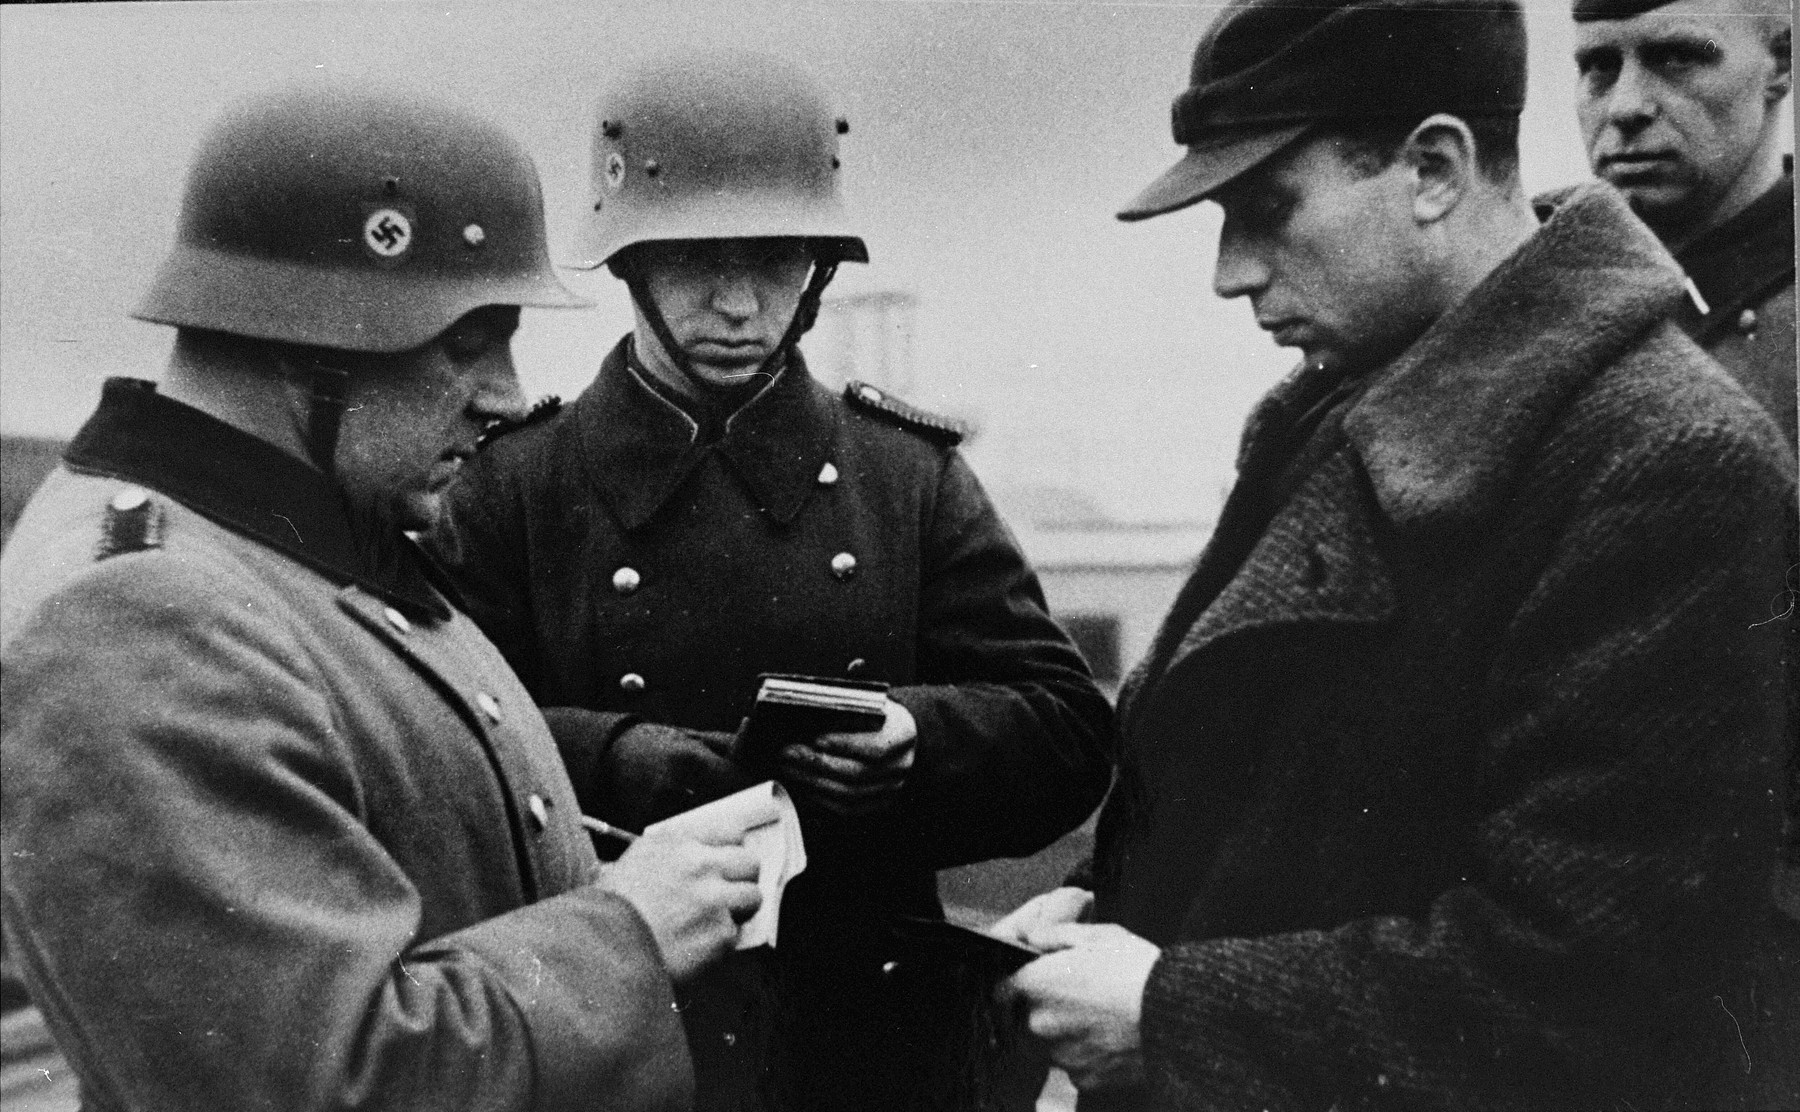 German police or soldiers check the identification papers of a Jew in the streets of Krakow.